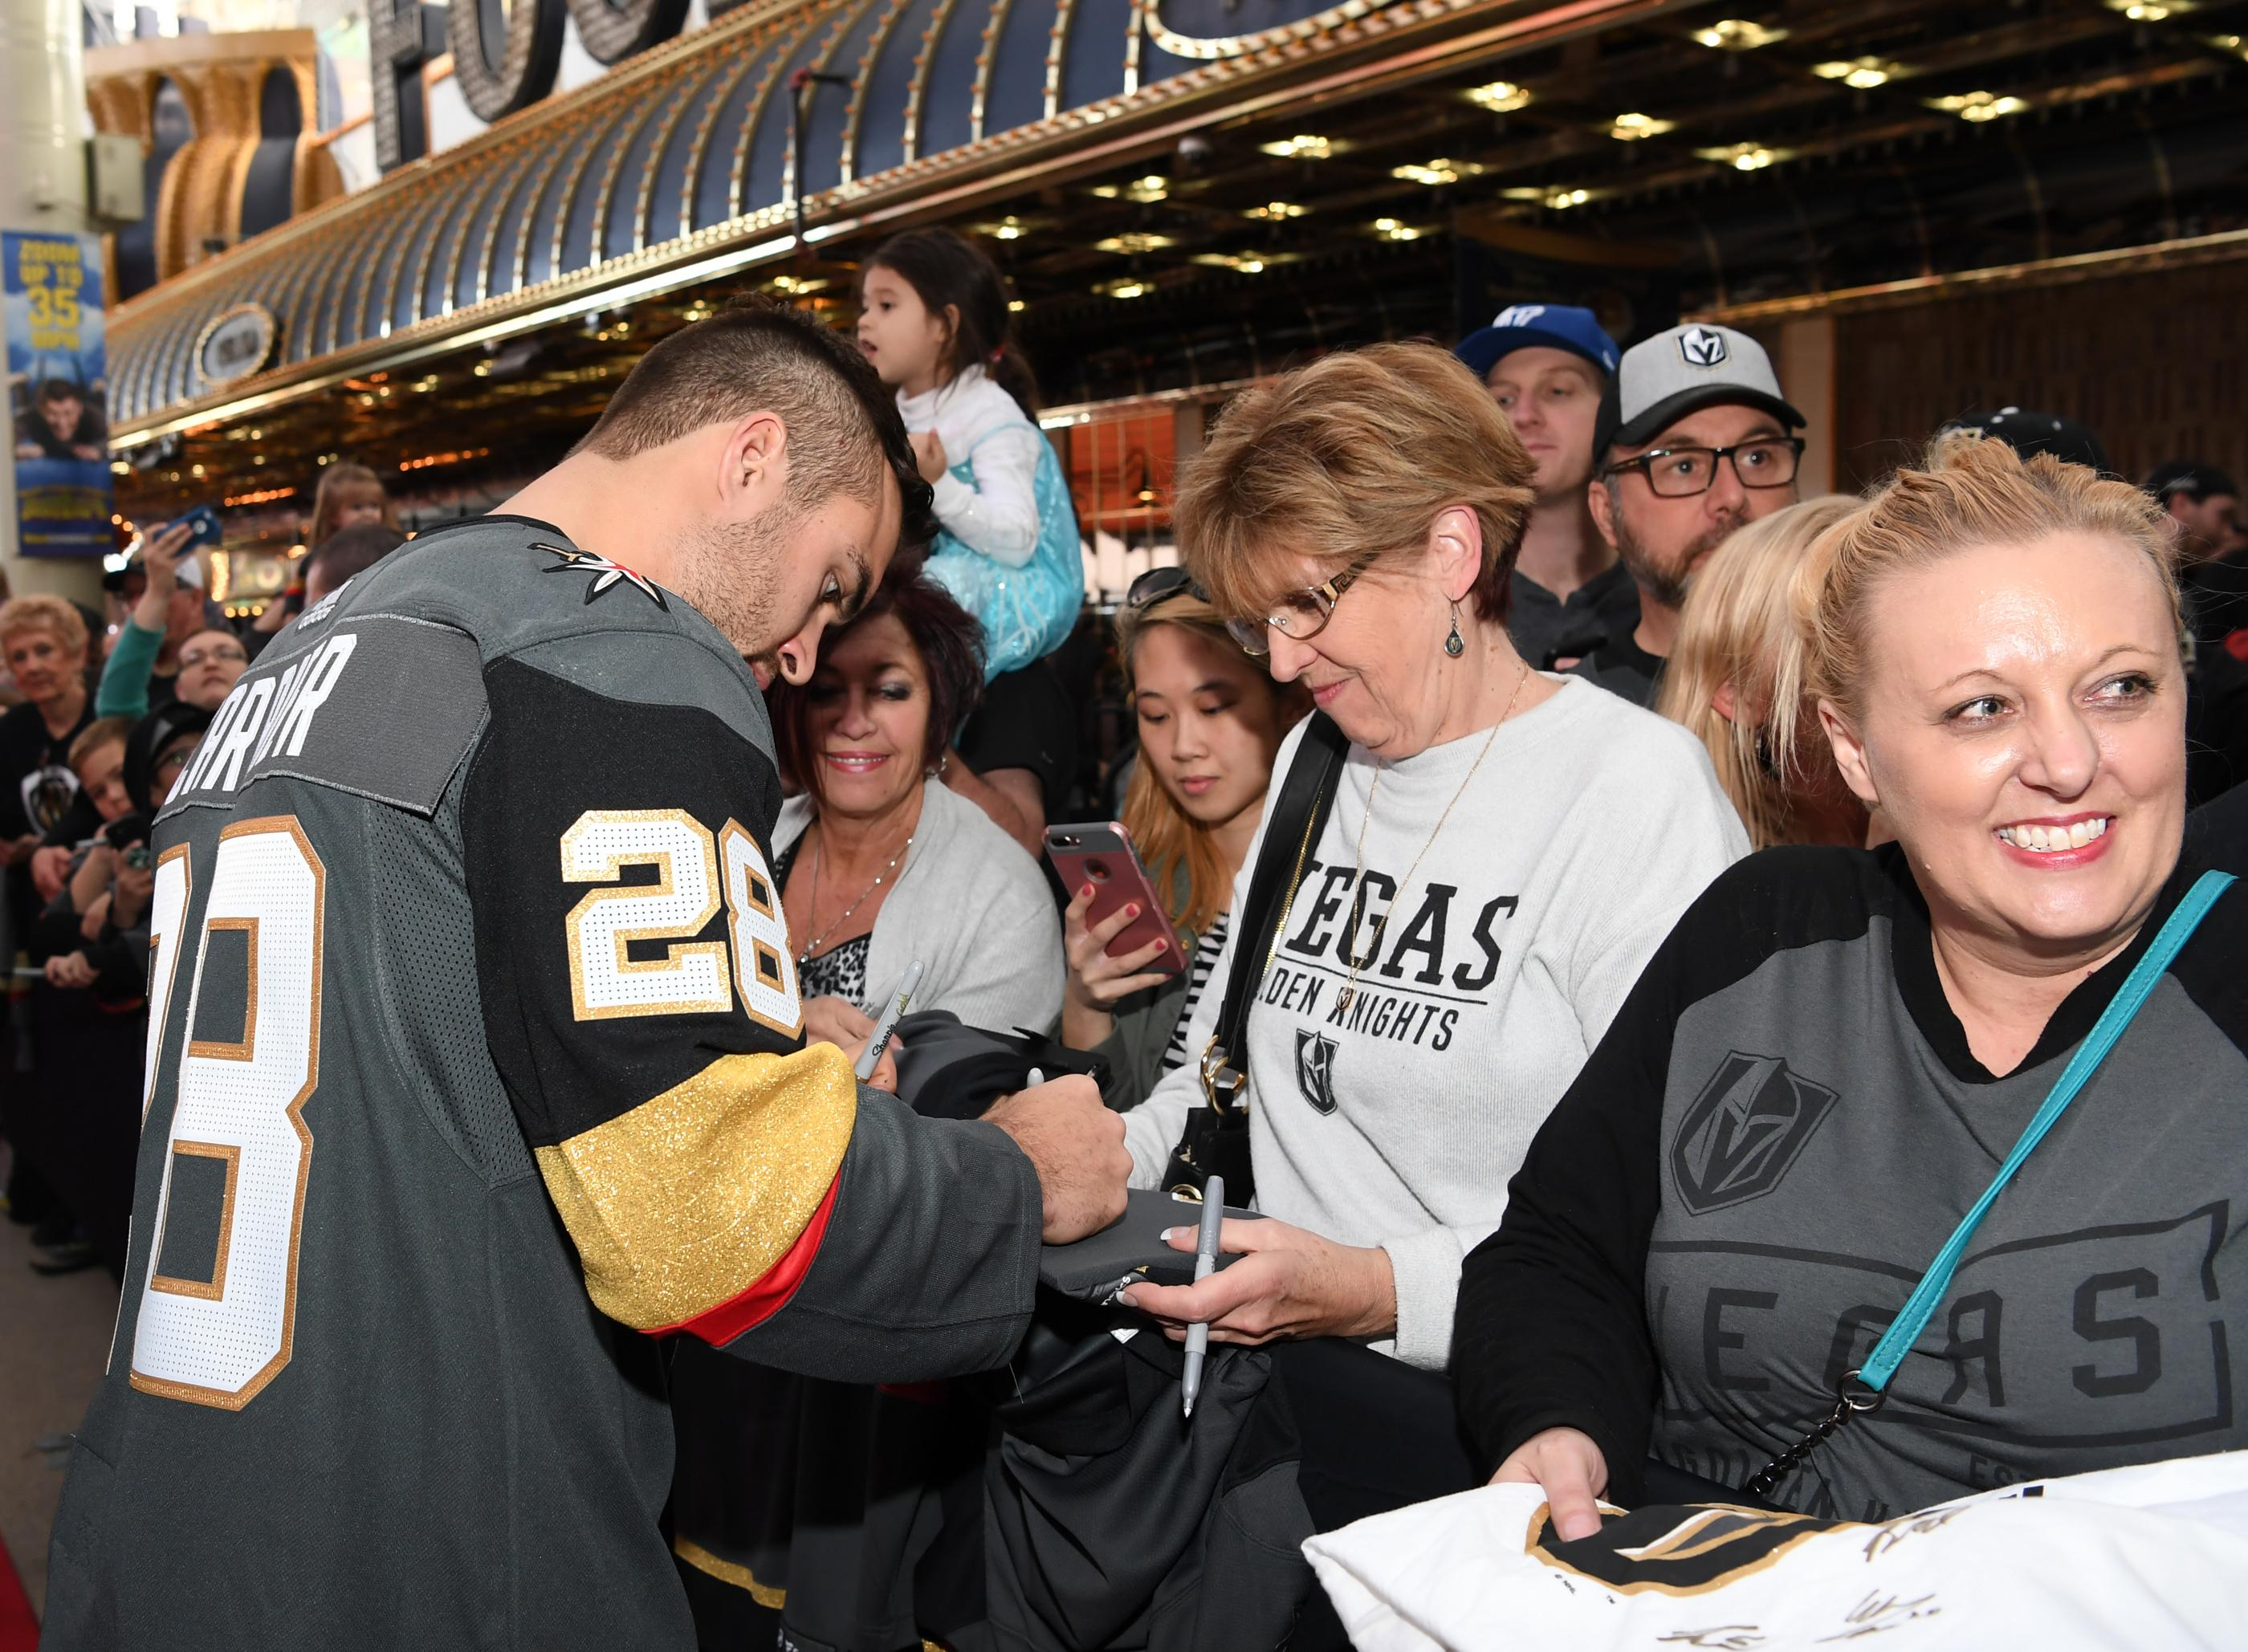 The Golden Knights host a Fan Fest with the D Las Vegas and Fremont Street Experience. Las Vegas Golden Knights player William Carrier signs a fans shirt at Fremont Street Experience. Sunday, January 14, 2017. CREDIT: Glenn Pinkerton/Las Vegas News Bureau